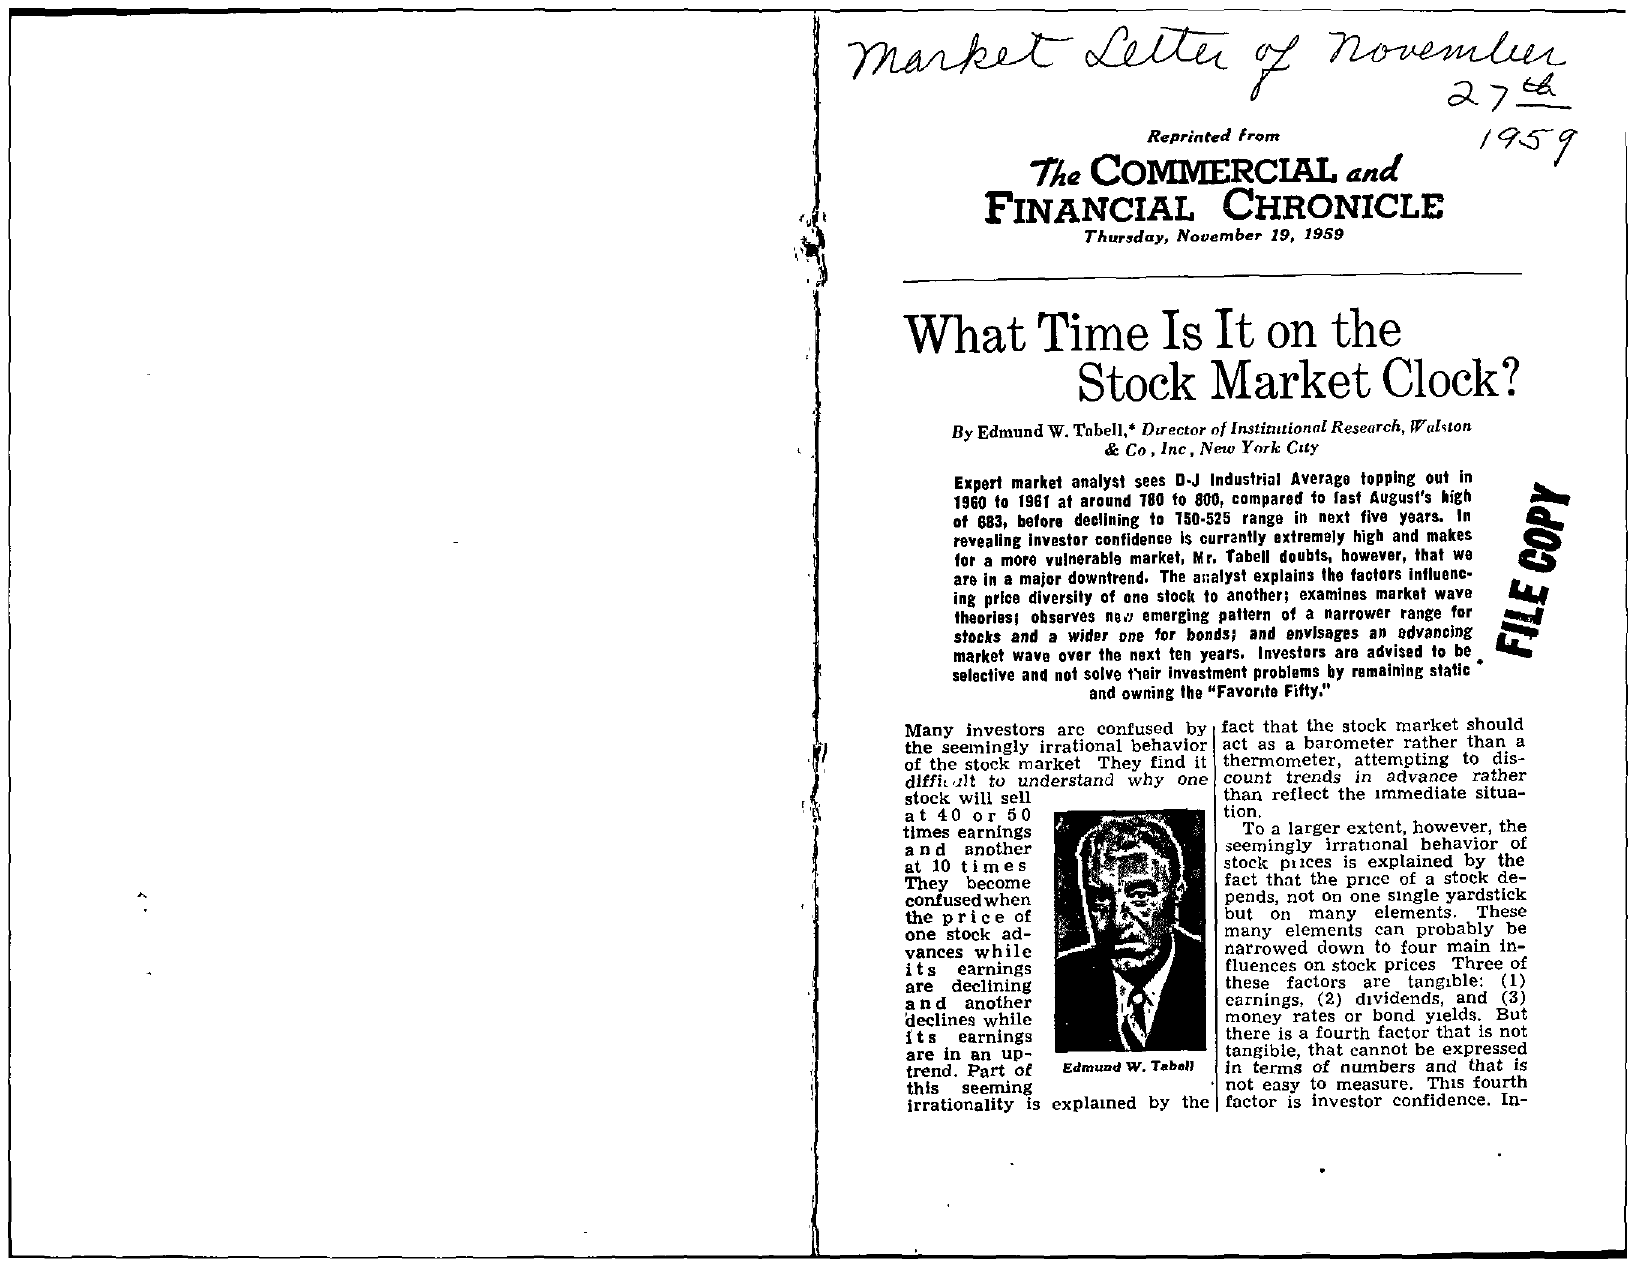 Tabell's Market Letter - November 27, 1959 page 1